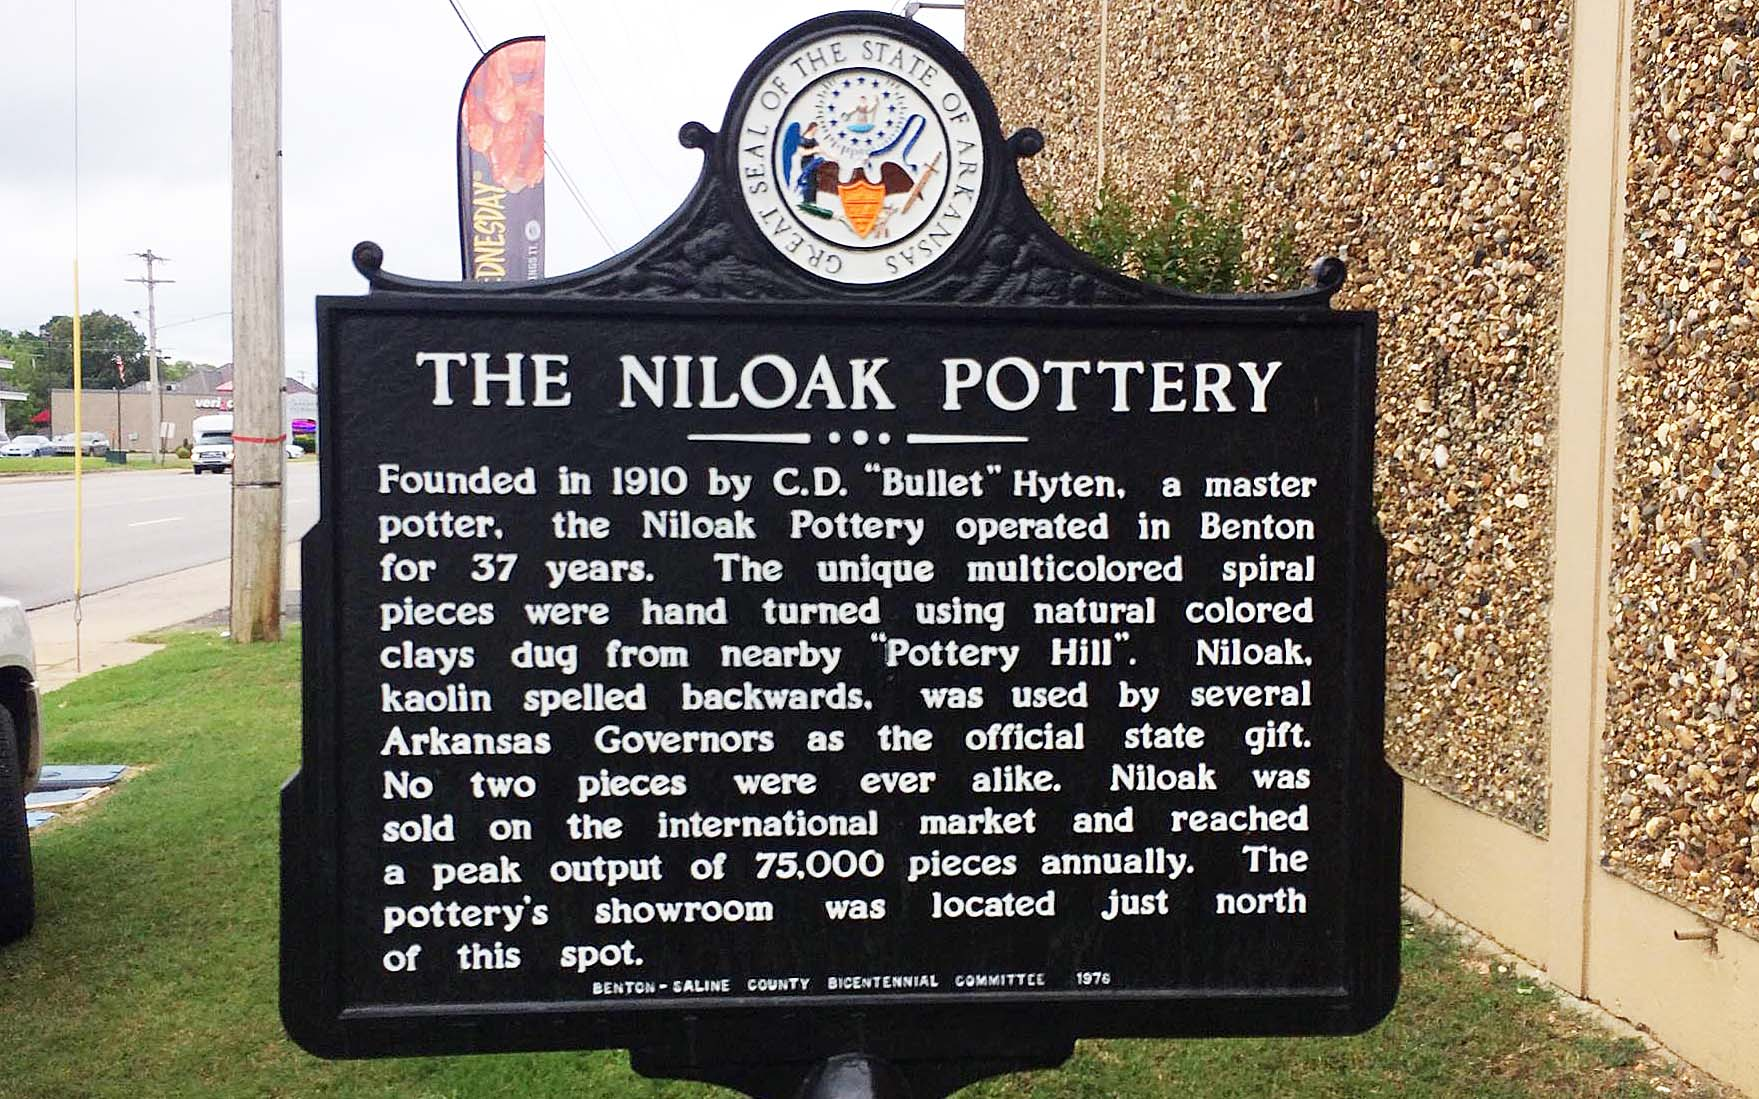 The Niloak Pottery Historical Marker was added in 1976, where the showroom once stood.